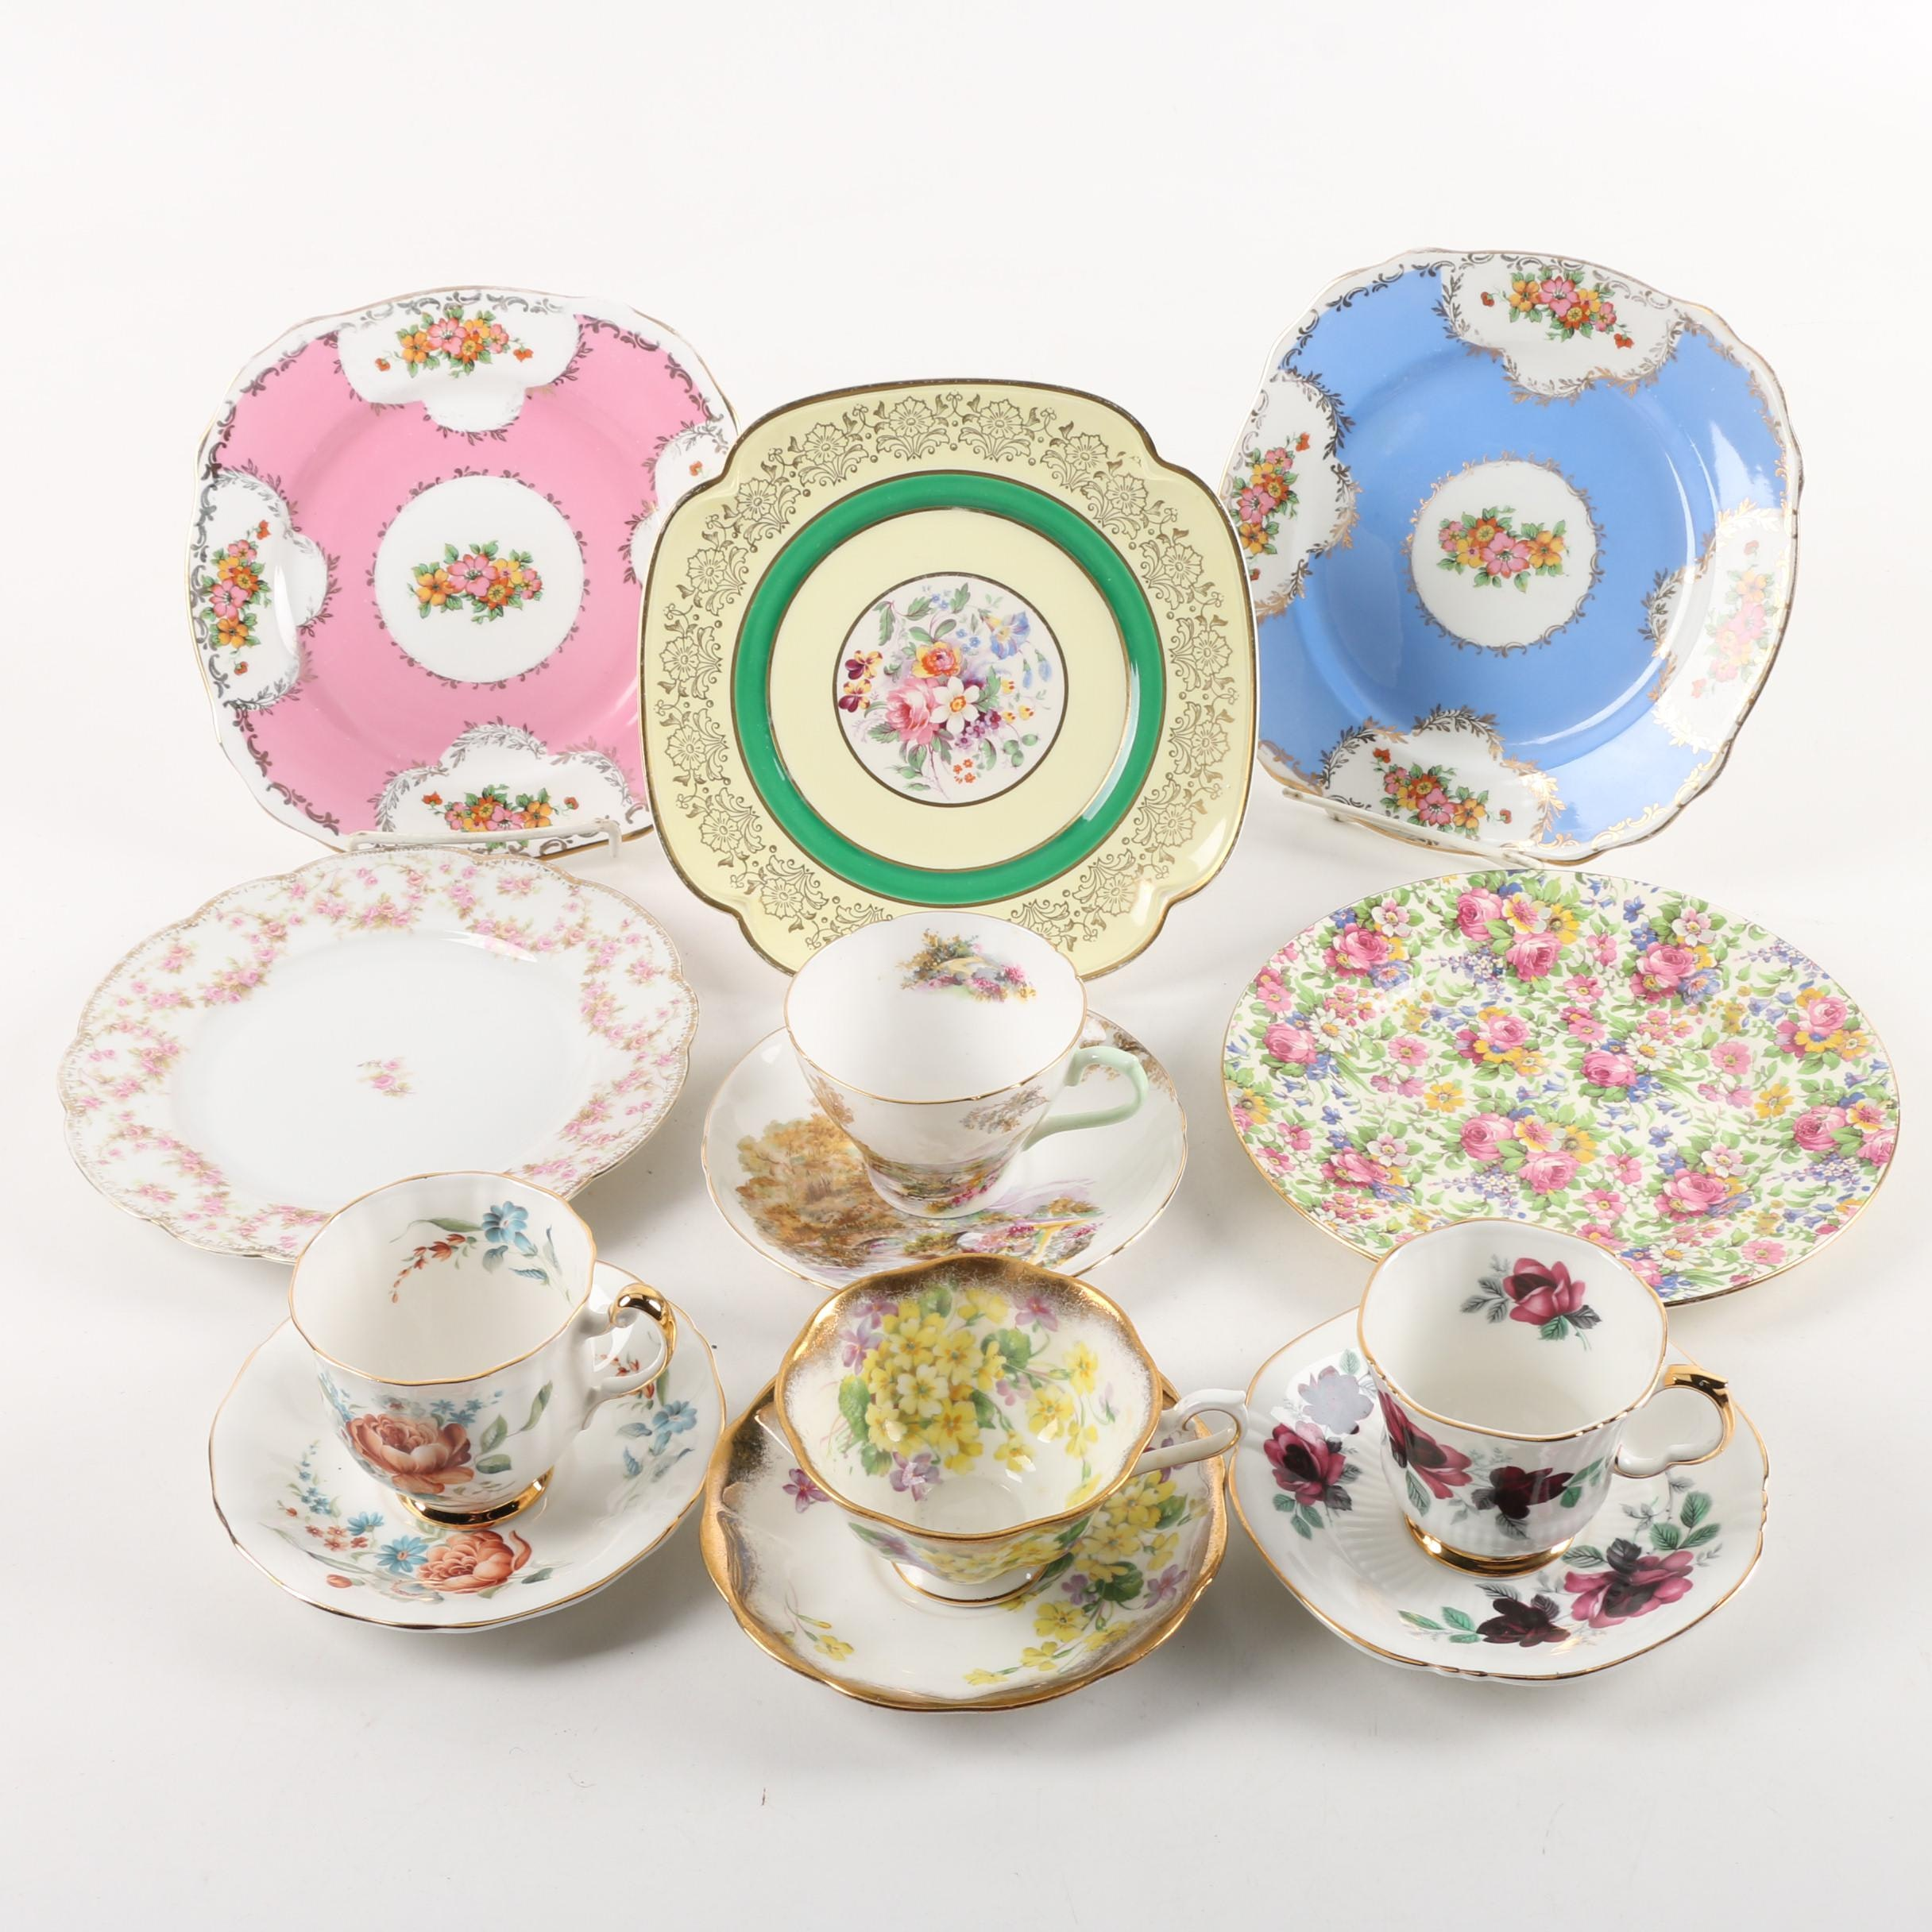 Vintage European Transfer Printed Bone China Teacups, Saucers, and Salad Plates